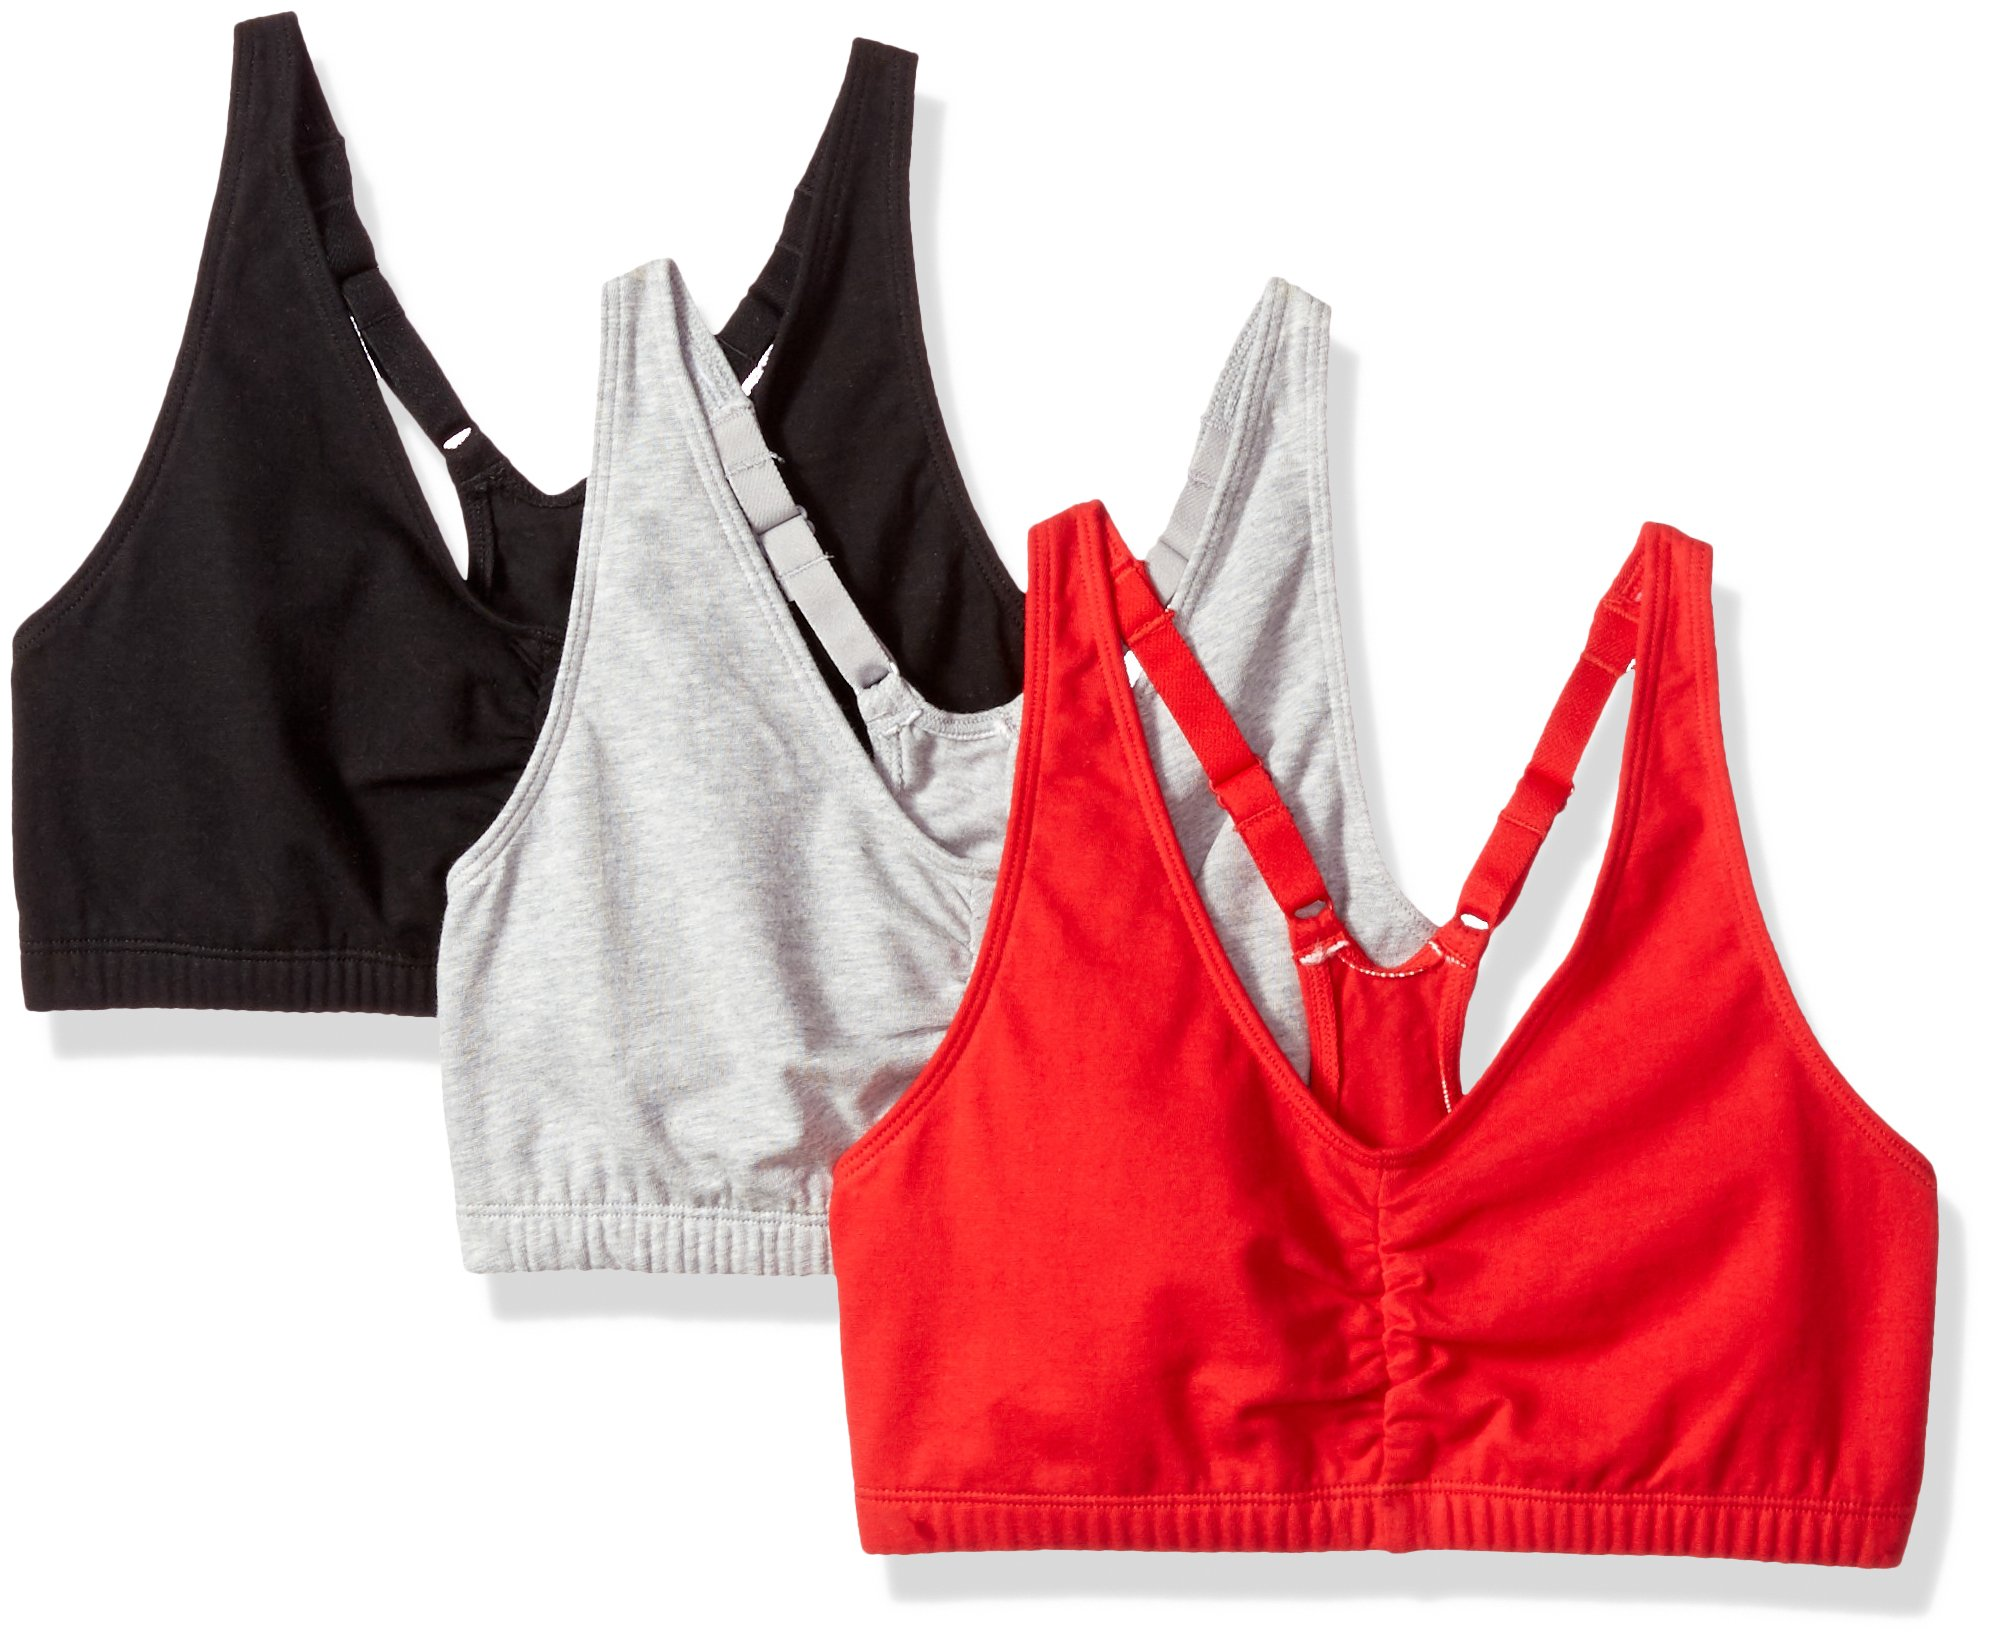 Fruit of the Loom Women's Adjustable Shirred Front Racerback Bra, red hot/Black/Heather Grey - 3 Pack, 42